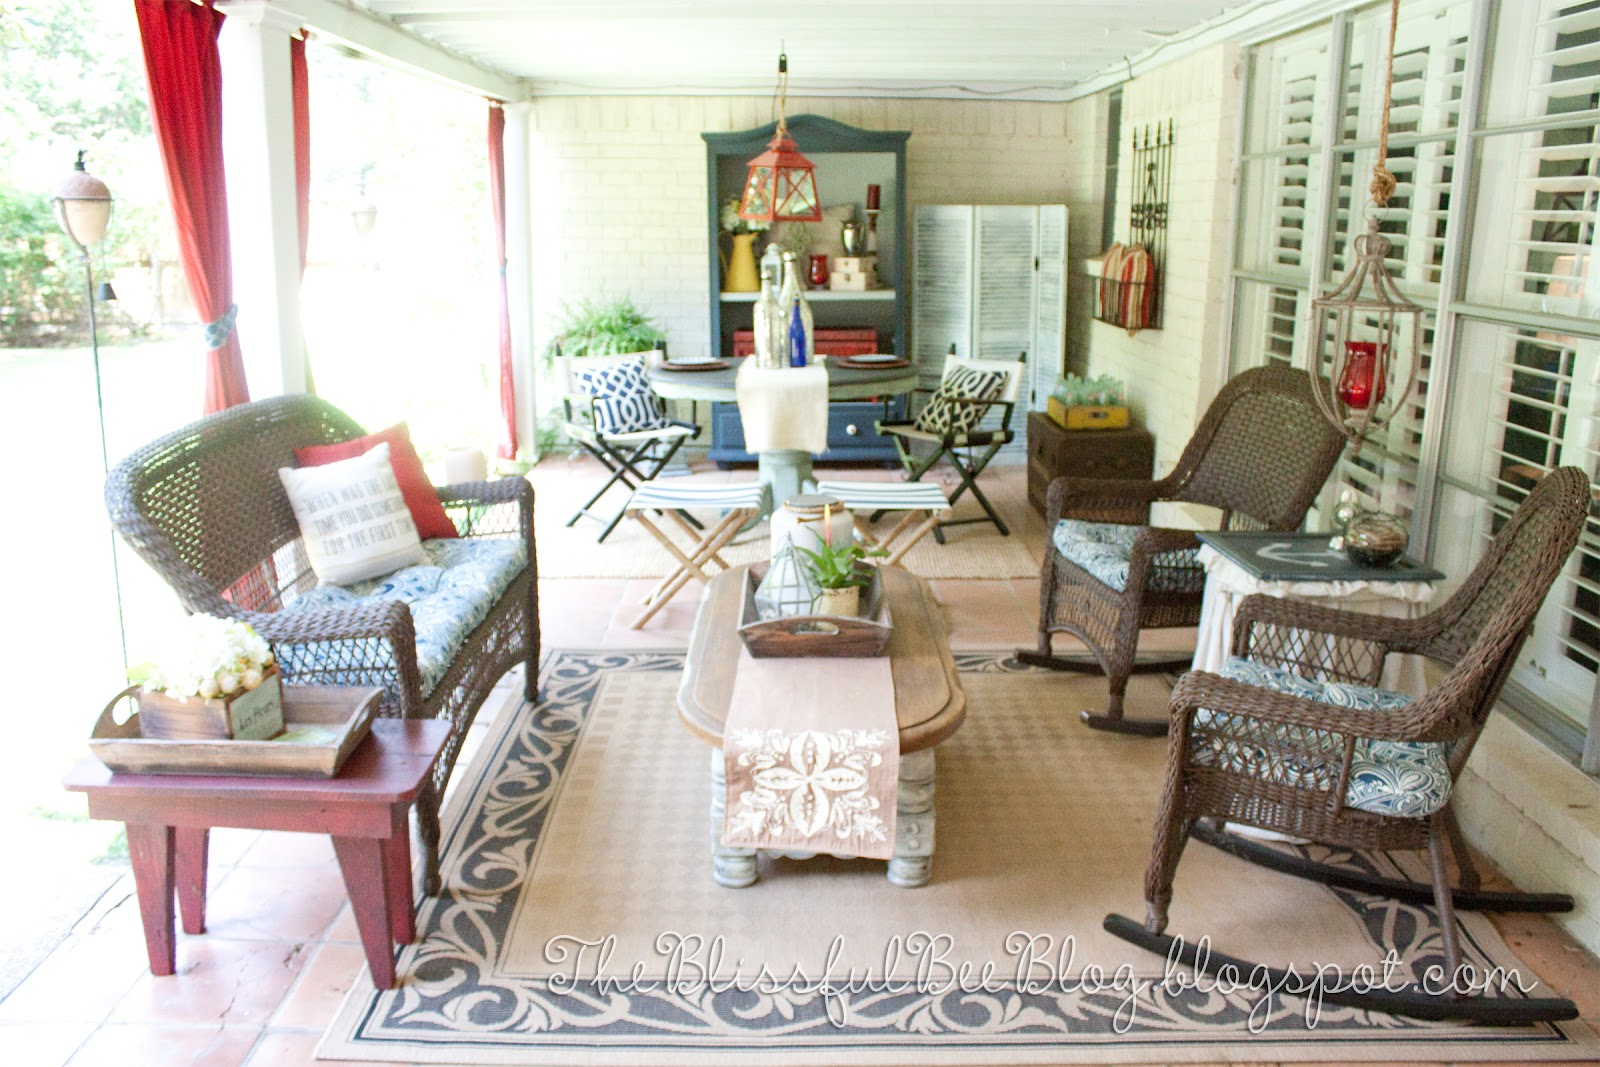 Porch Makeover Round 2! – THE BLISSFUL BEE